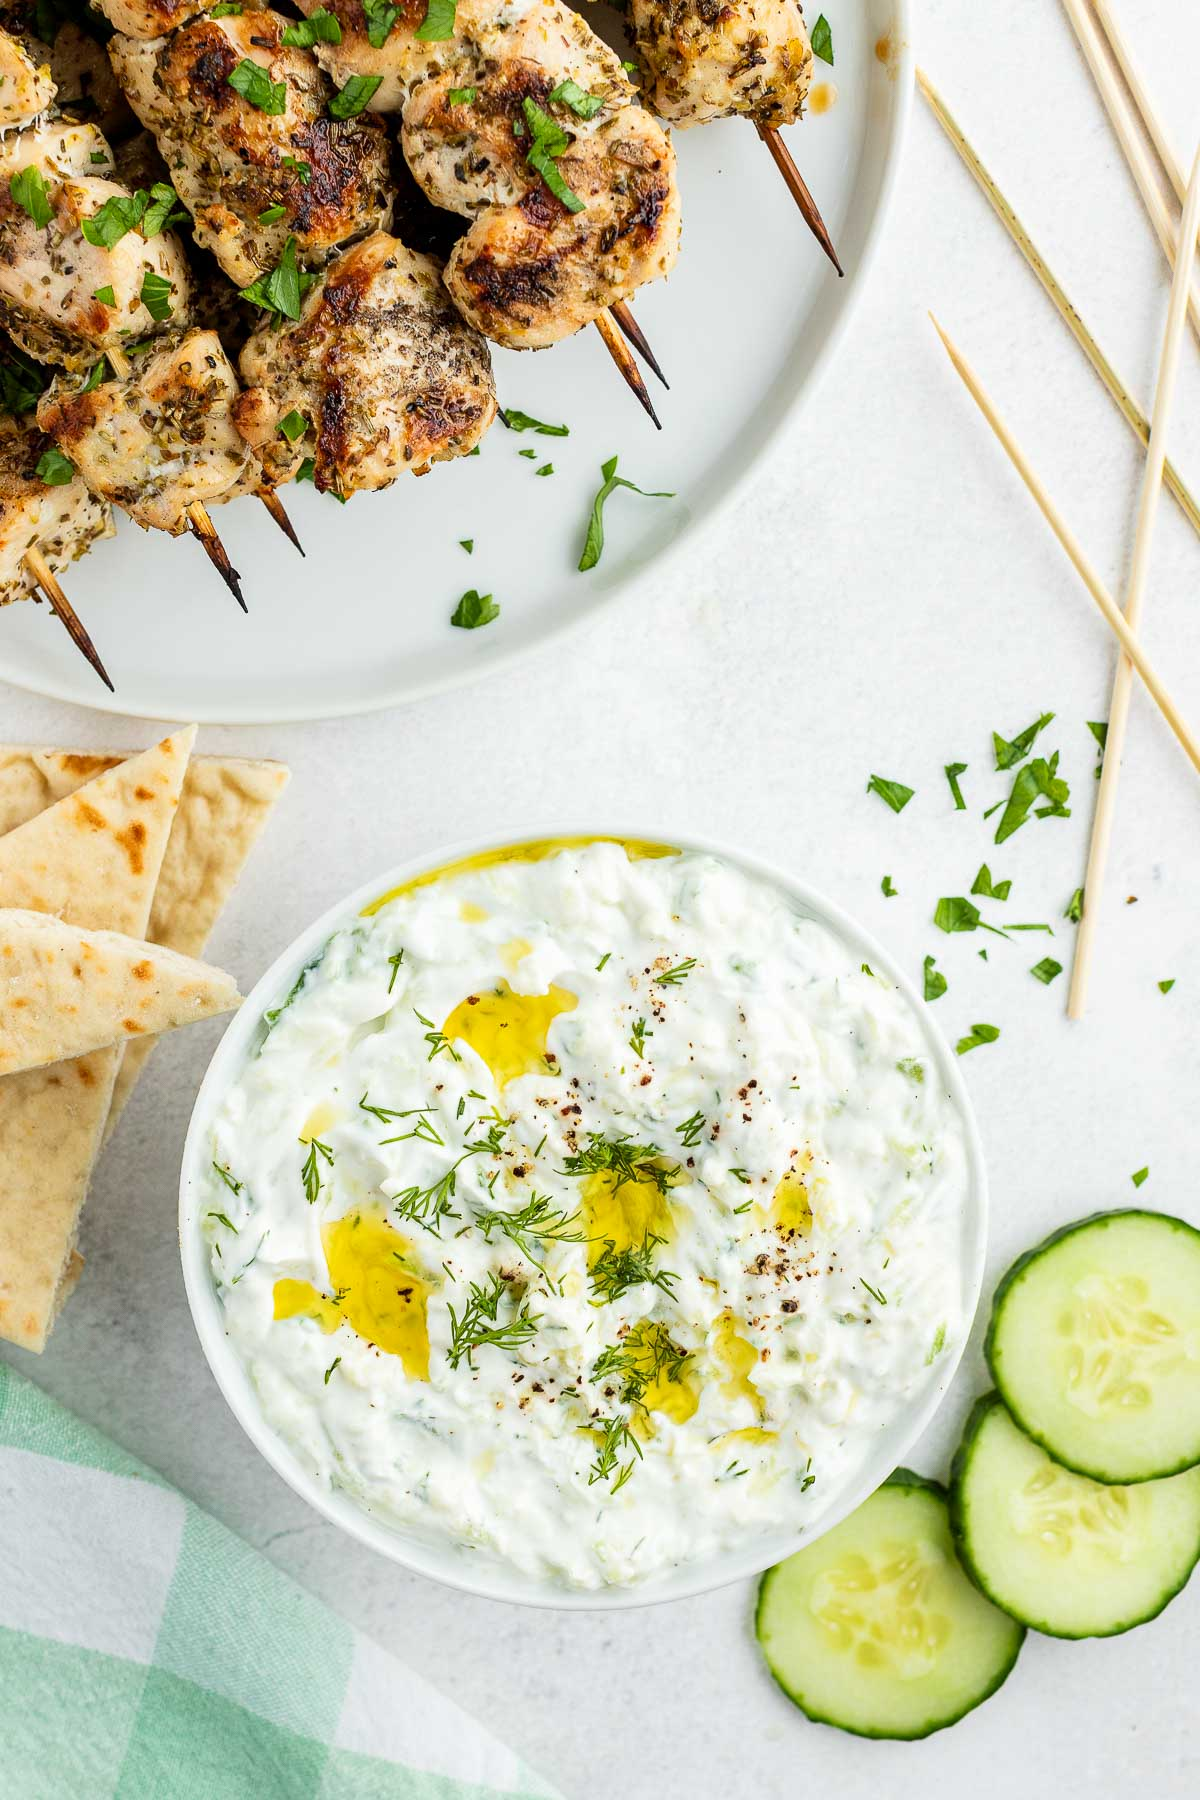 tzatziki sauce with souvlaki skewers from overhead